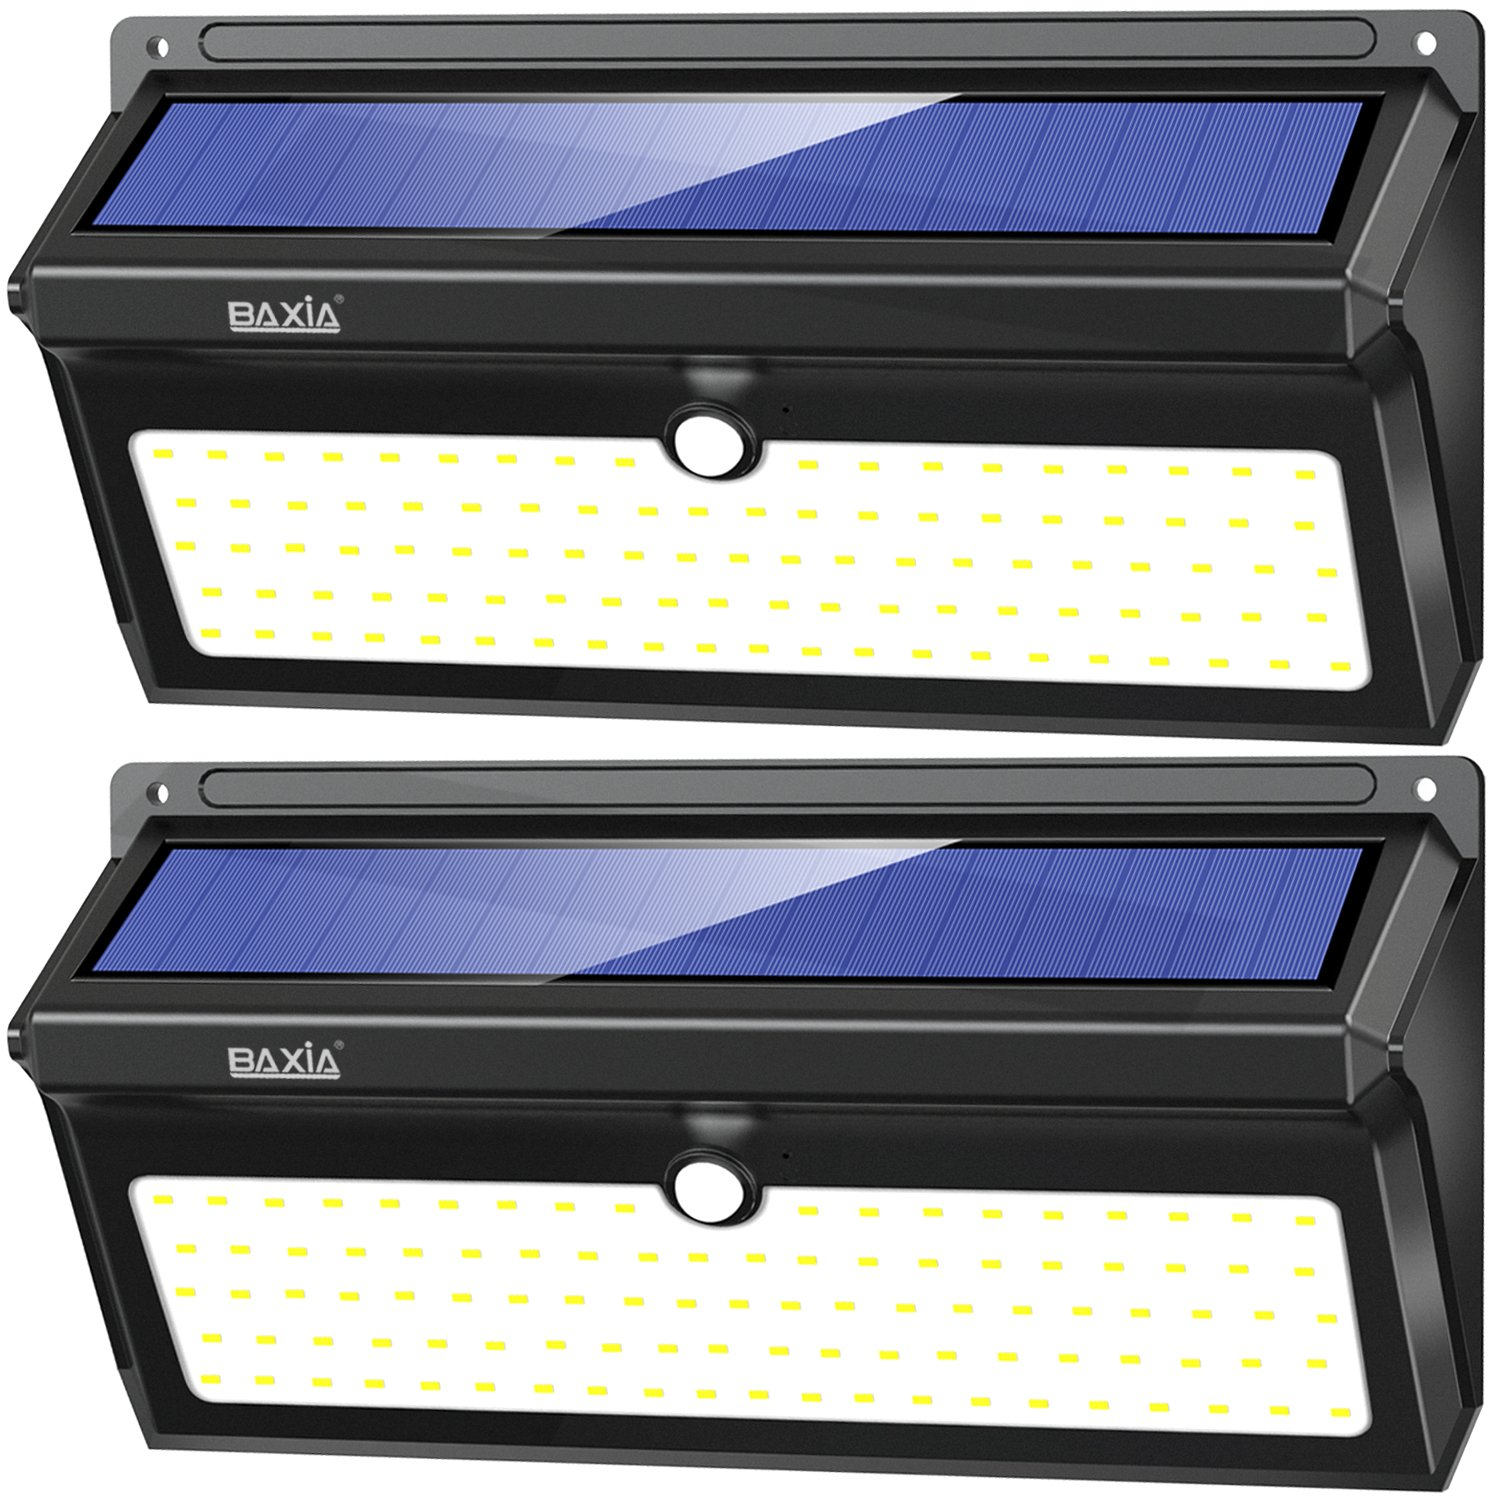 BAXIA TECHNOLOGY LED Solar Lights, Solar Motion Sensor Lights With Wide Angle, Upgraded Waterproof Super Bright Security Solar Wall Lights for Outdoor Garden, Front Door, Yard, Fence [2 Pack]